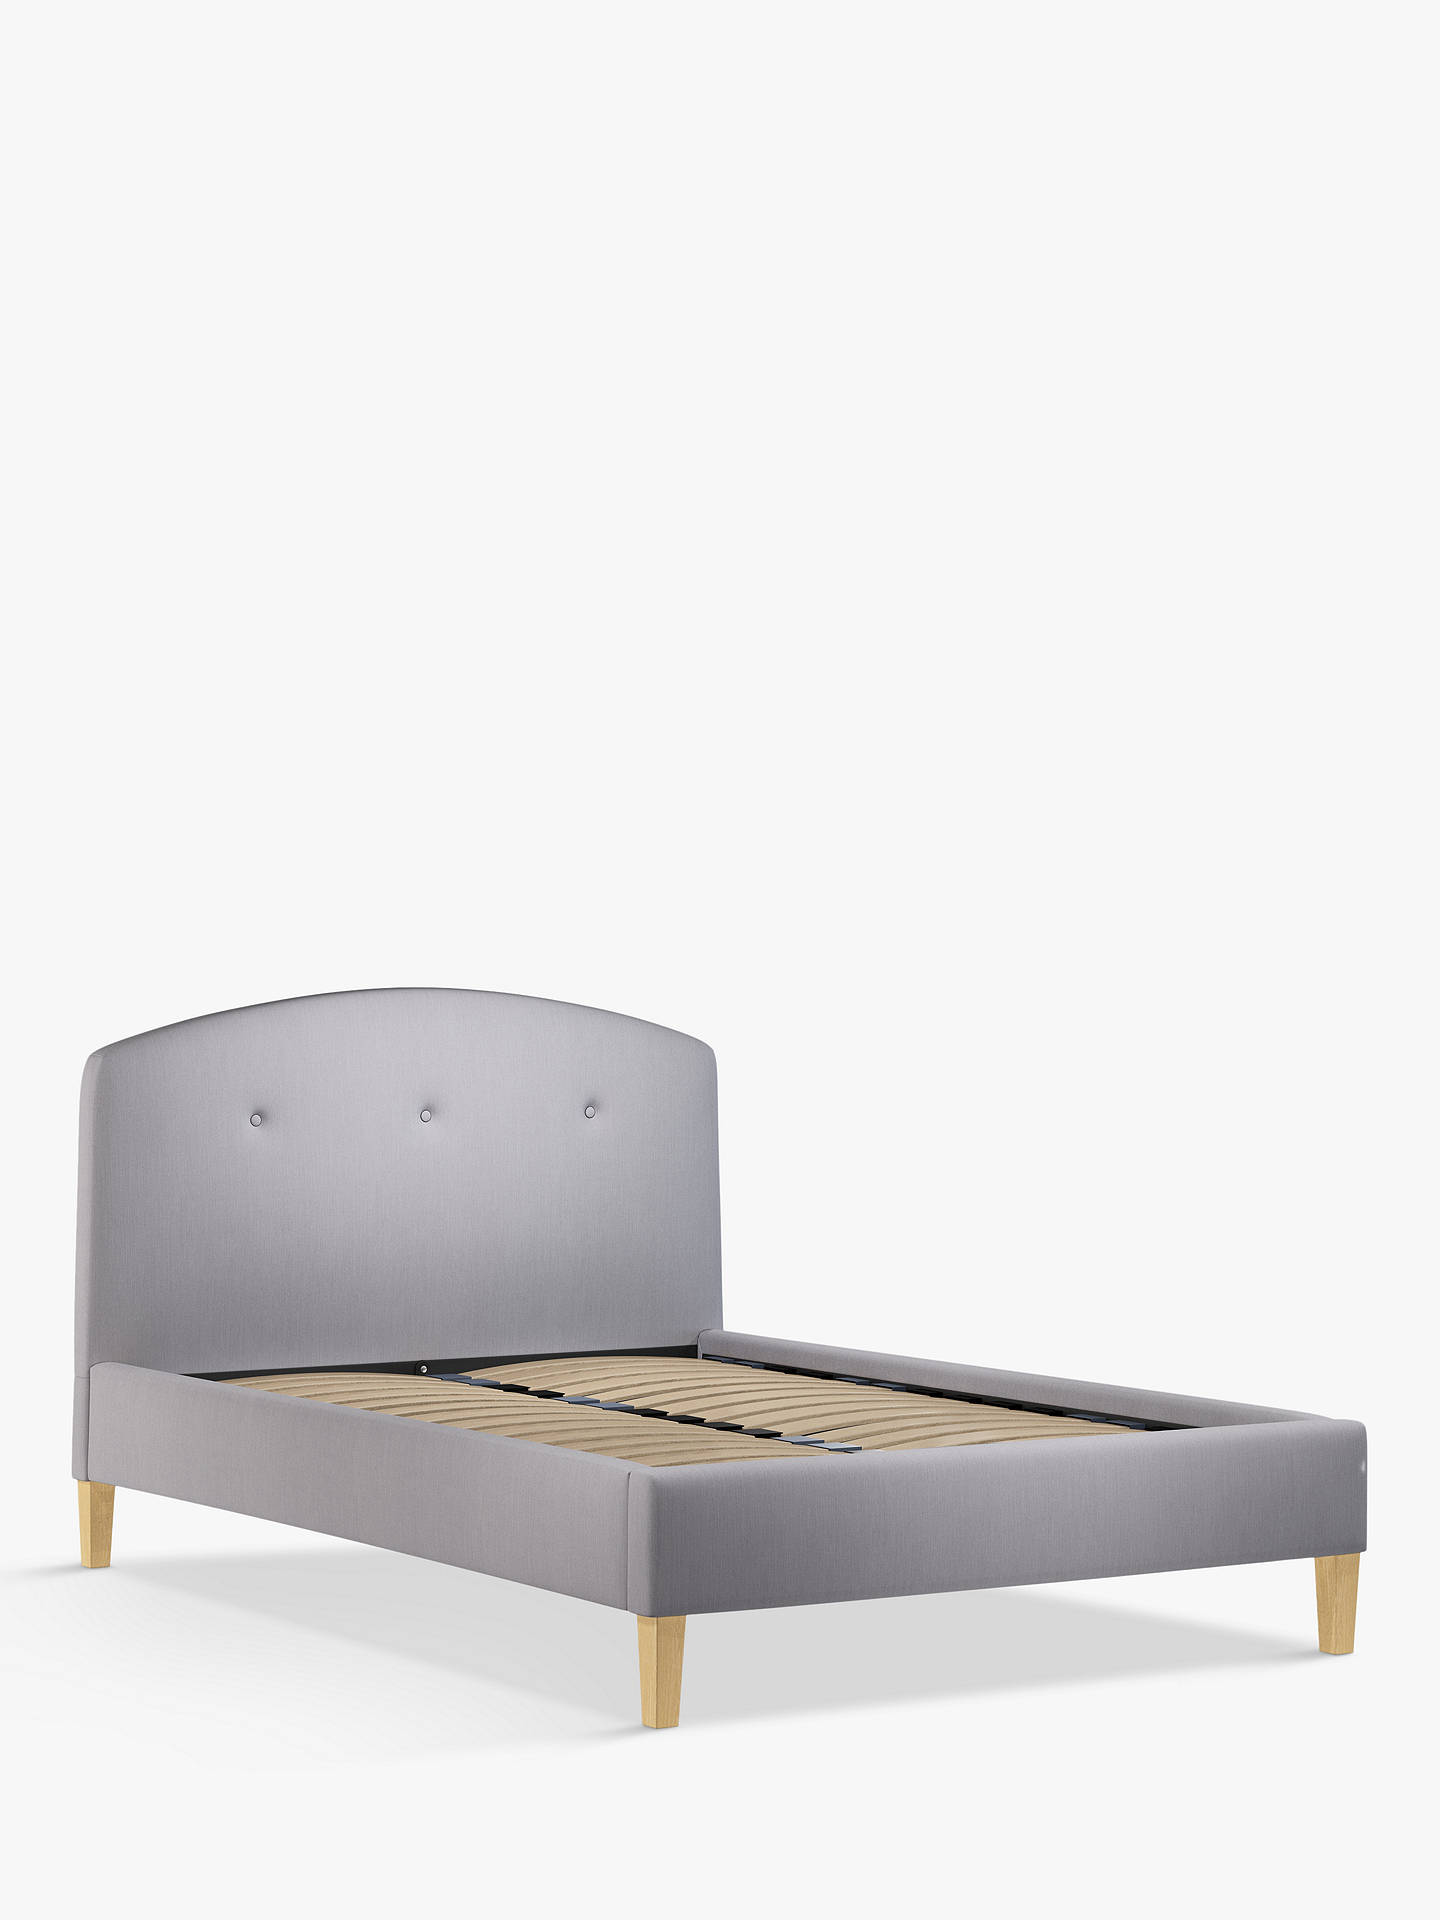 Awe Inspiring John Lewis Partners Grace Upholstered Bed Frame Double Topaz Grey Download Free Architecture Designs Intelgarnamadebymaigaardcom